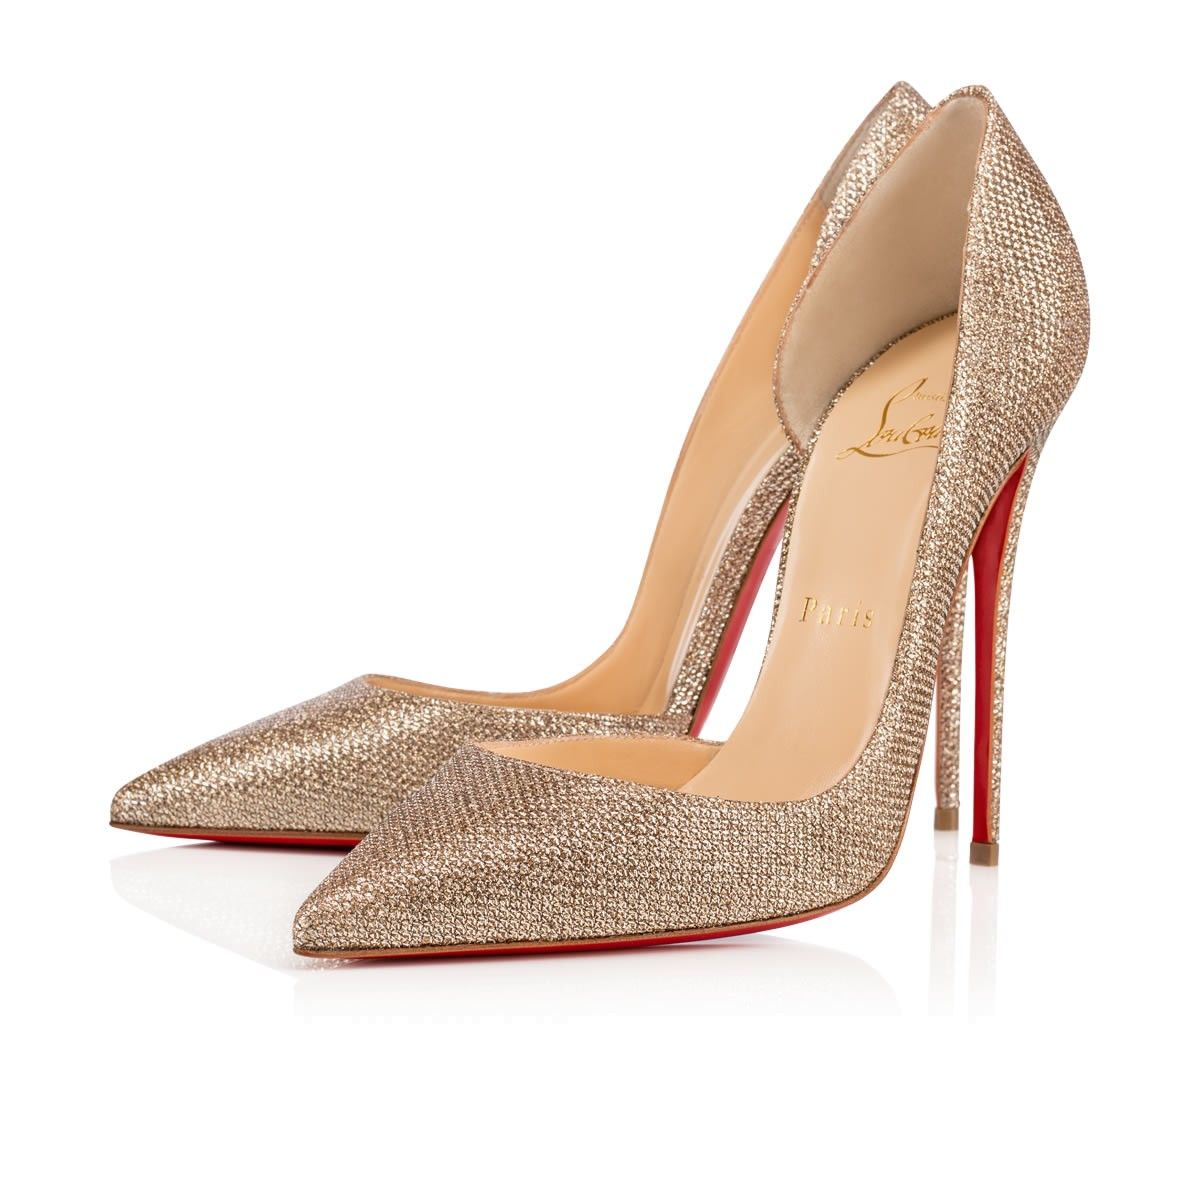 Shoes - Iriza - Christian Louboutin. Iriza 120mm Gold Glitter ... 4391c896866e